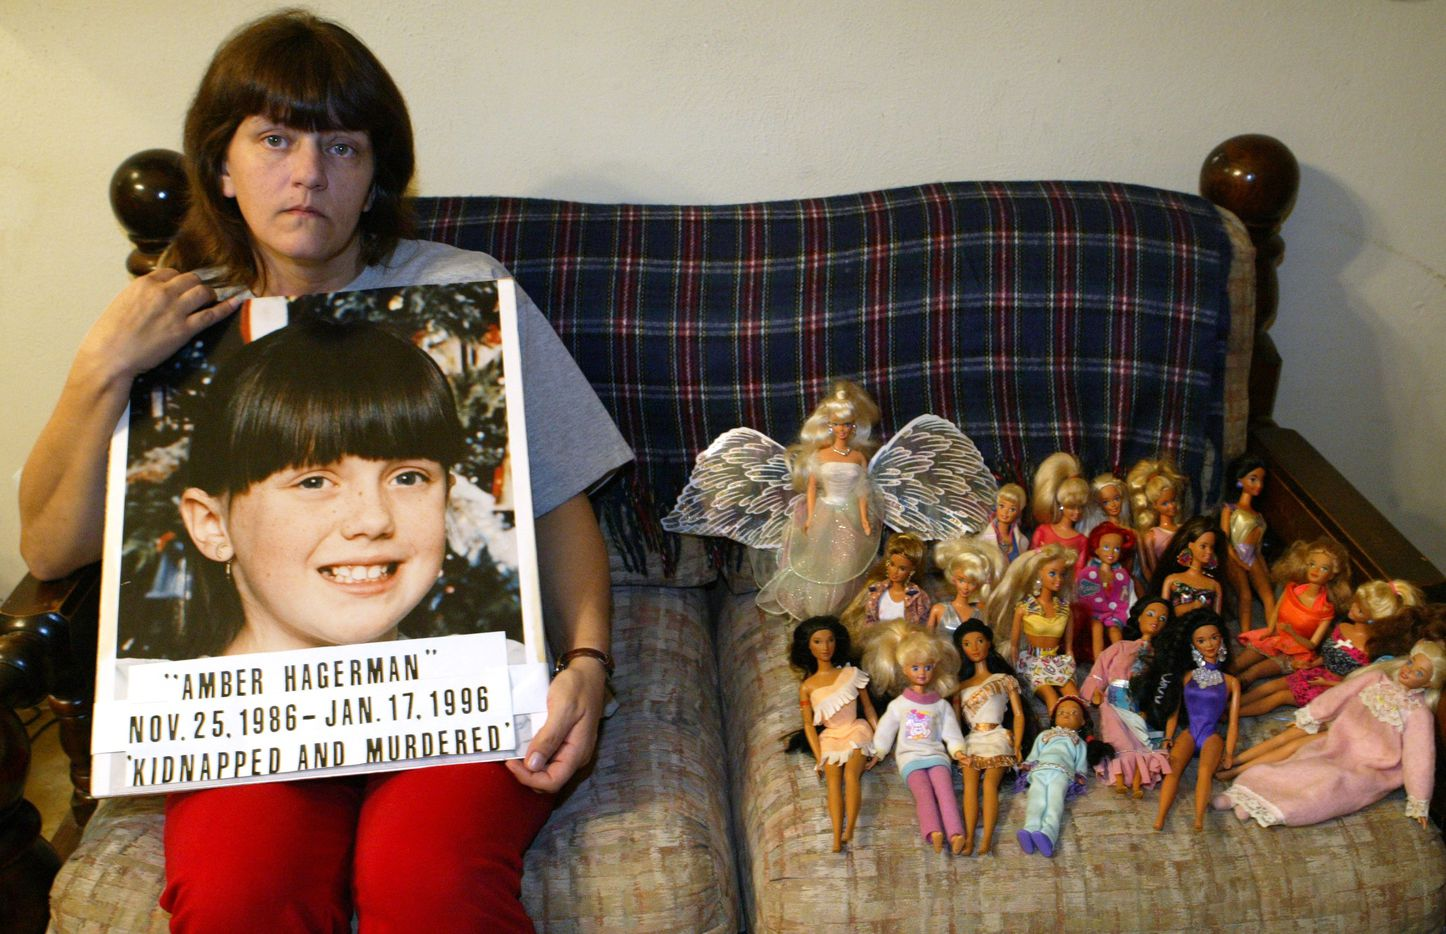 Donna Norris, mother of Amber Hagerman, sits next to her daughter's dolls while at her home in Hurst on January 10, 2006. Donna went to Washington, D.C. that week to commemorate the 10-year anniversary of her daughter's death. Amber was abducted and killed Jan. 13, 1996.